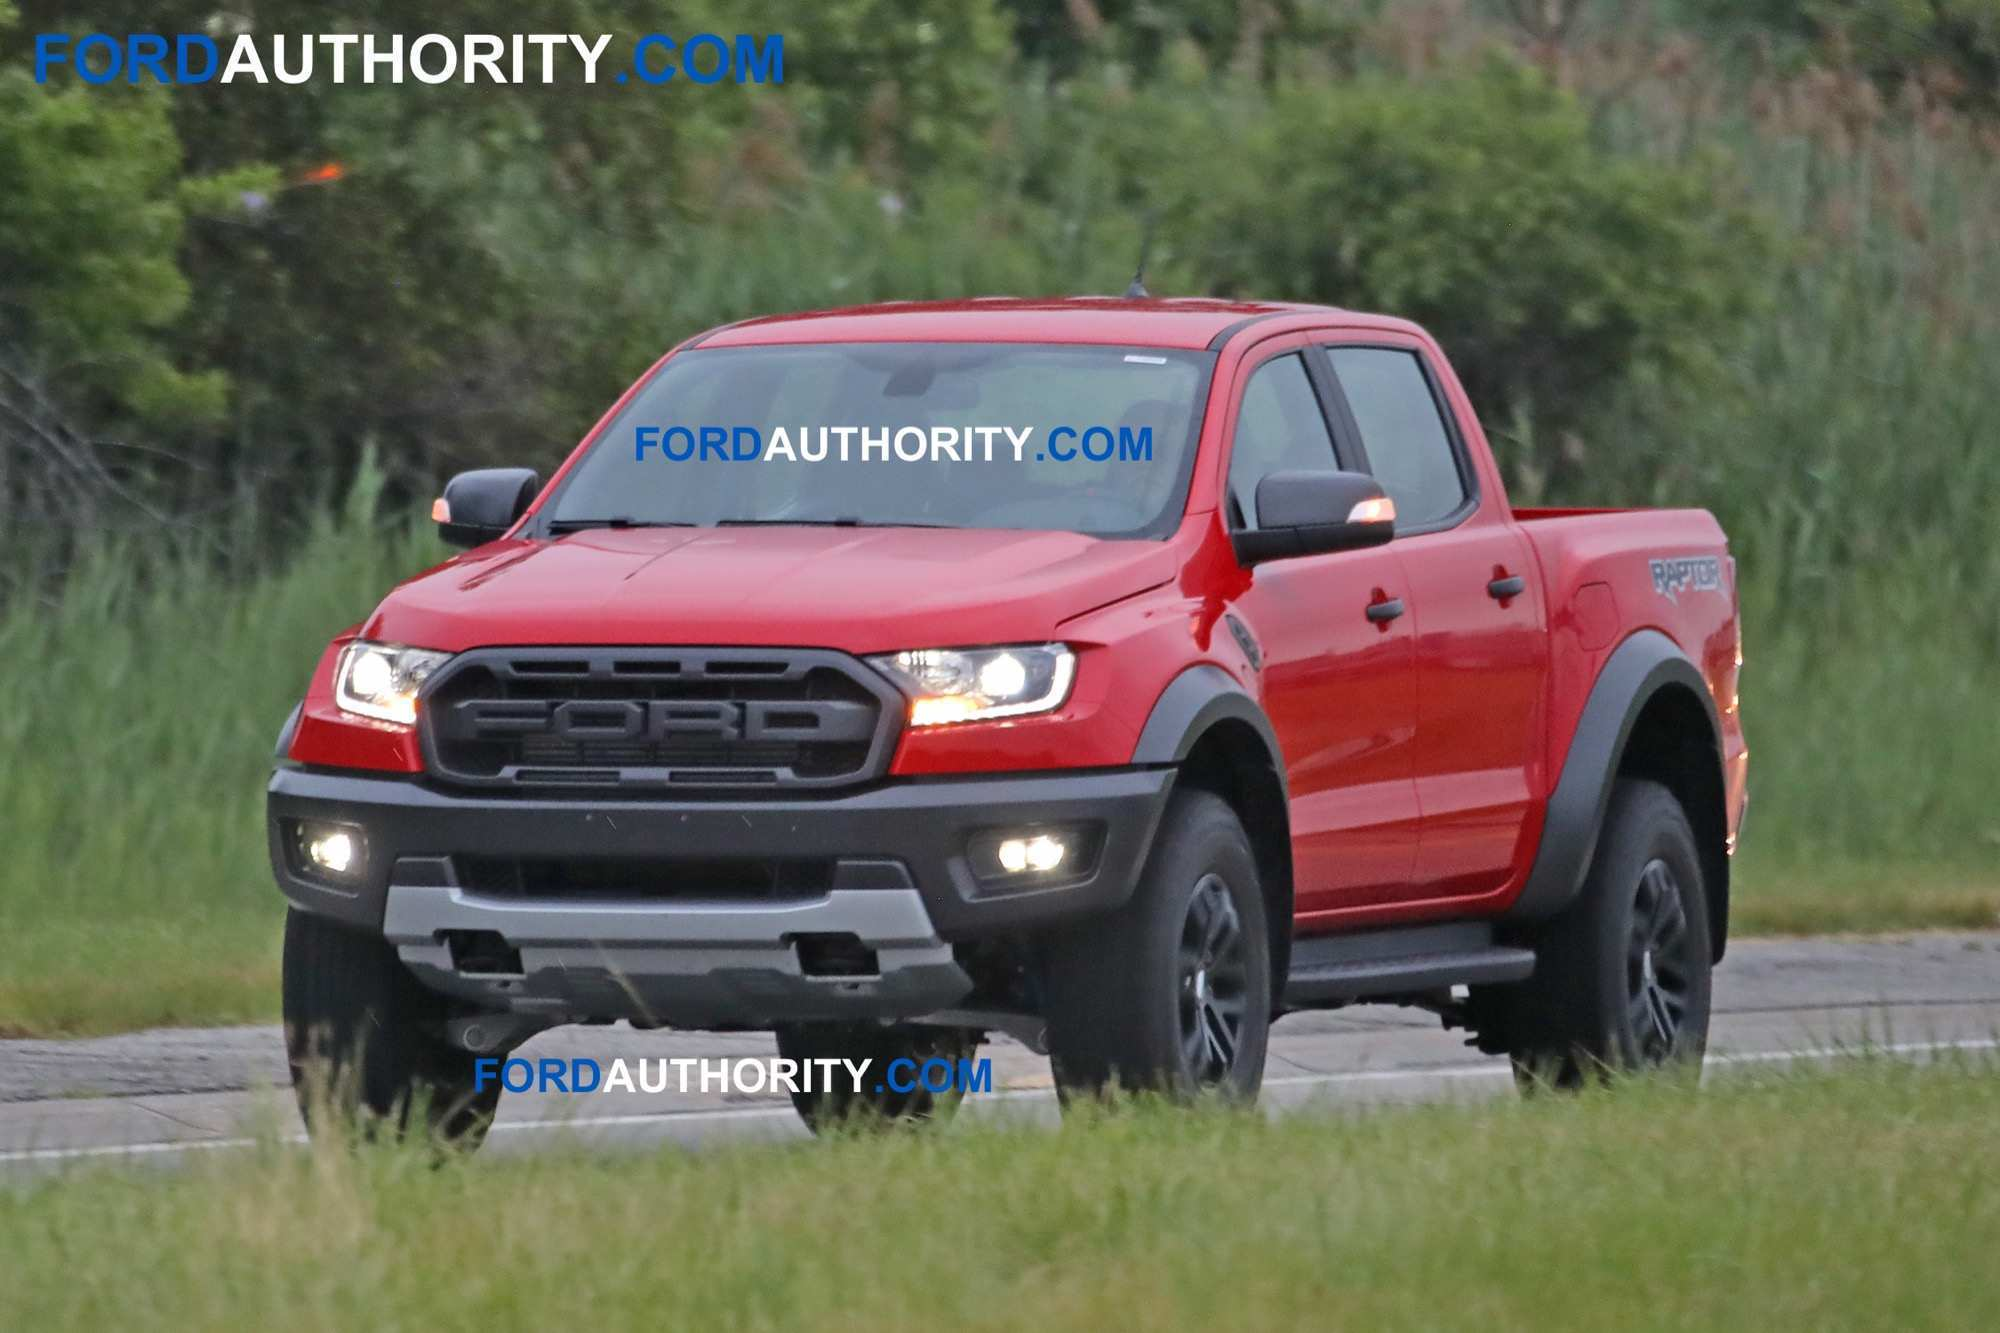 39 All New Ford Ranger 2019 Specs Performance And New Engine Release Date with Ford Ranger 2019 Specs Performance And New Engine